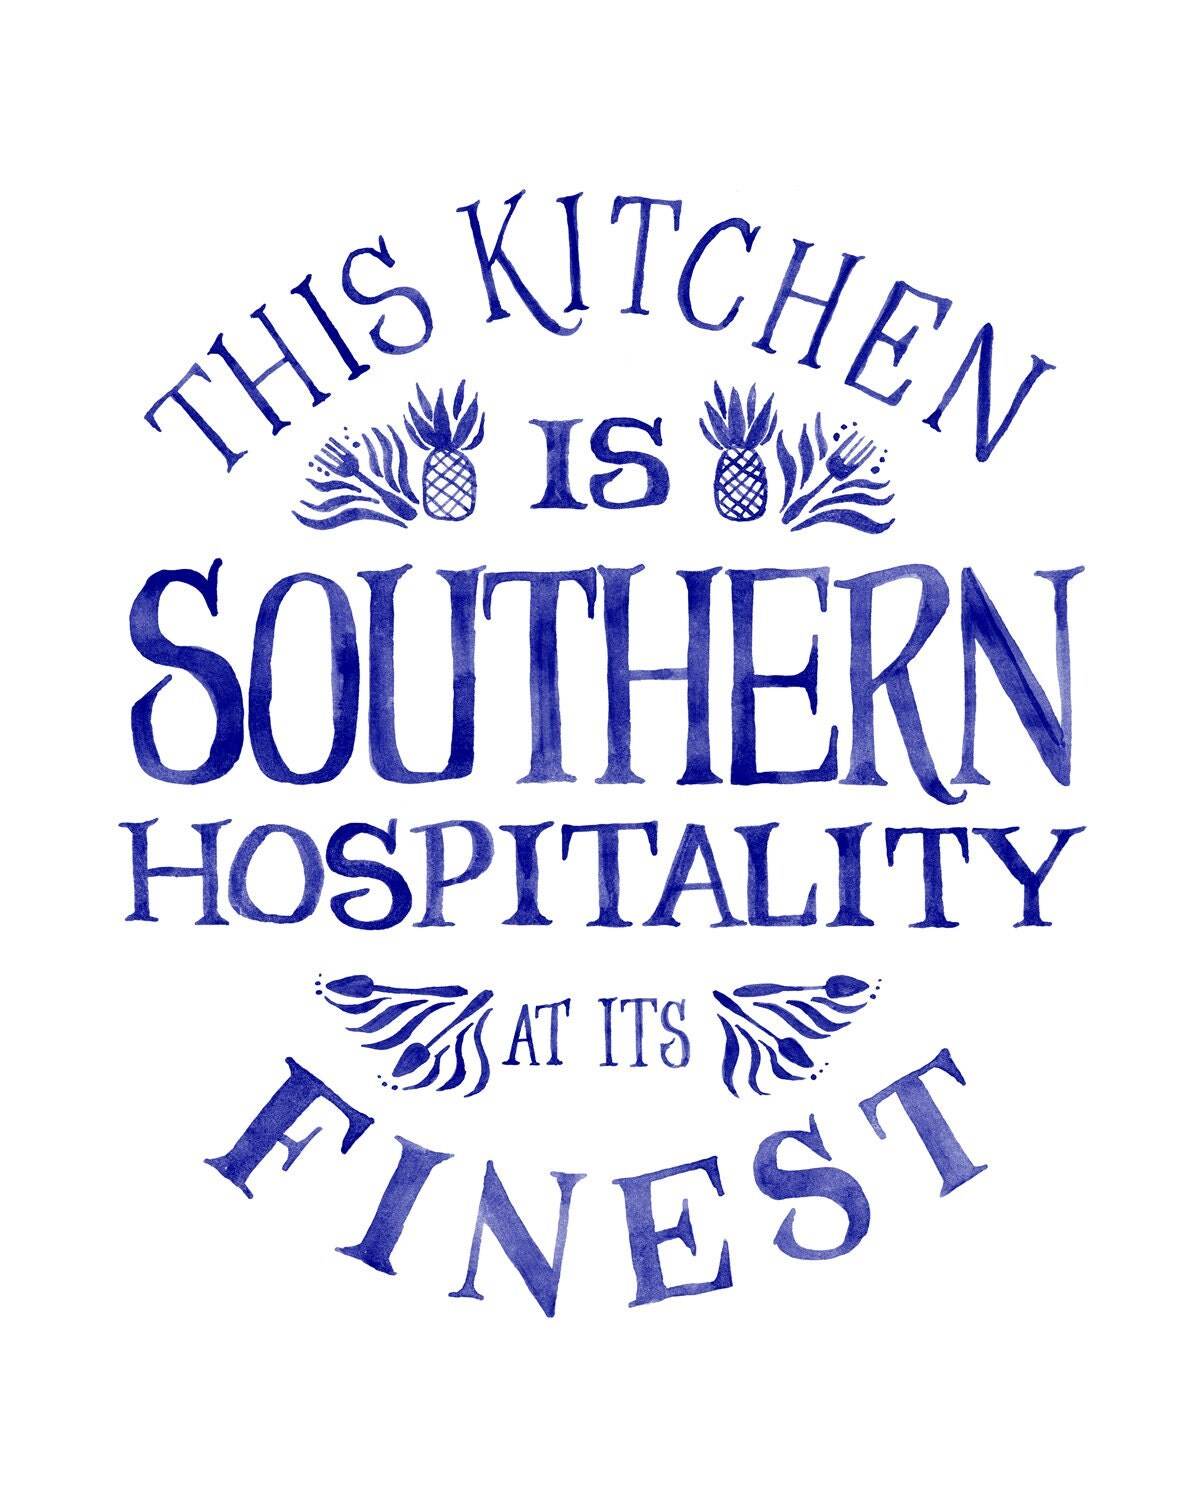 Southern Hospitality: This Kitchen Is Southern Hospitality At Its Finest Small